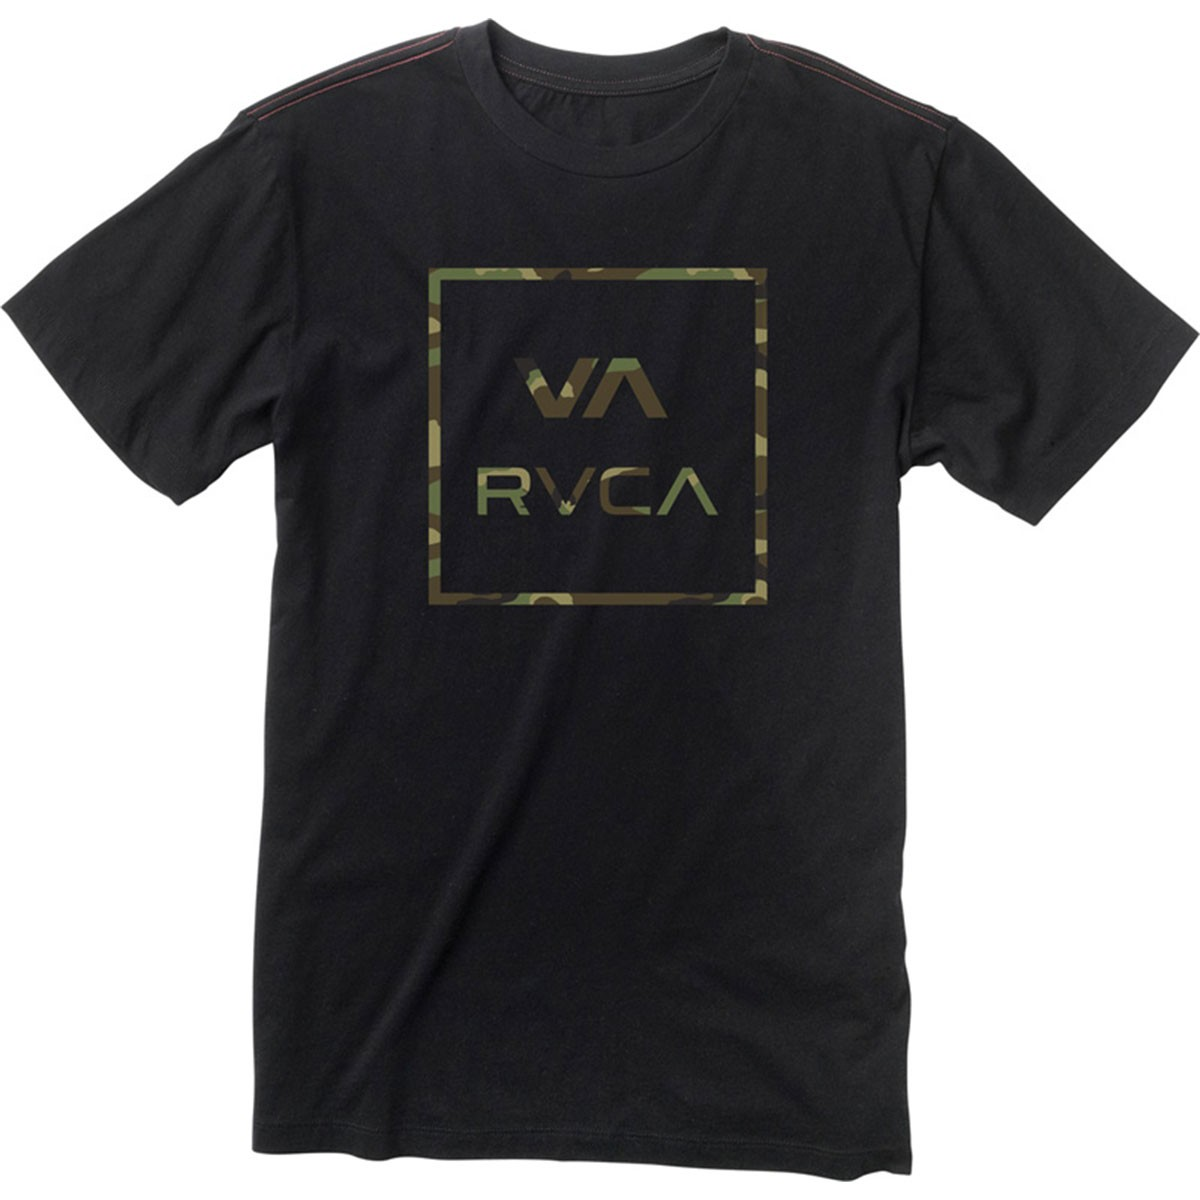 RVCA Vamo T-Shirt - Black